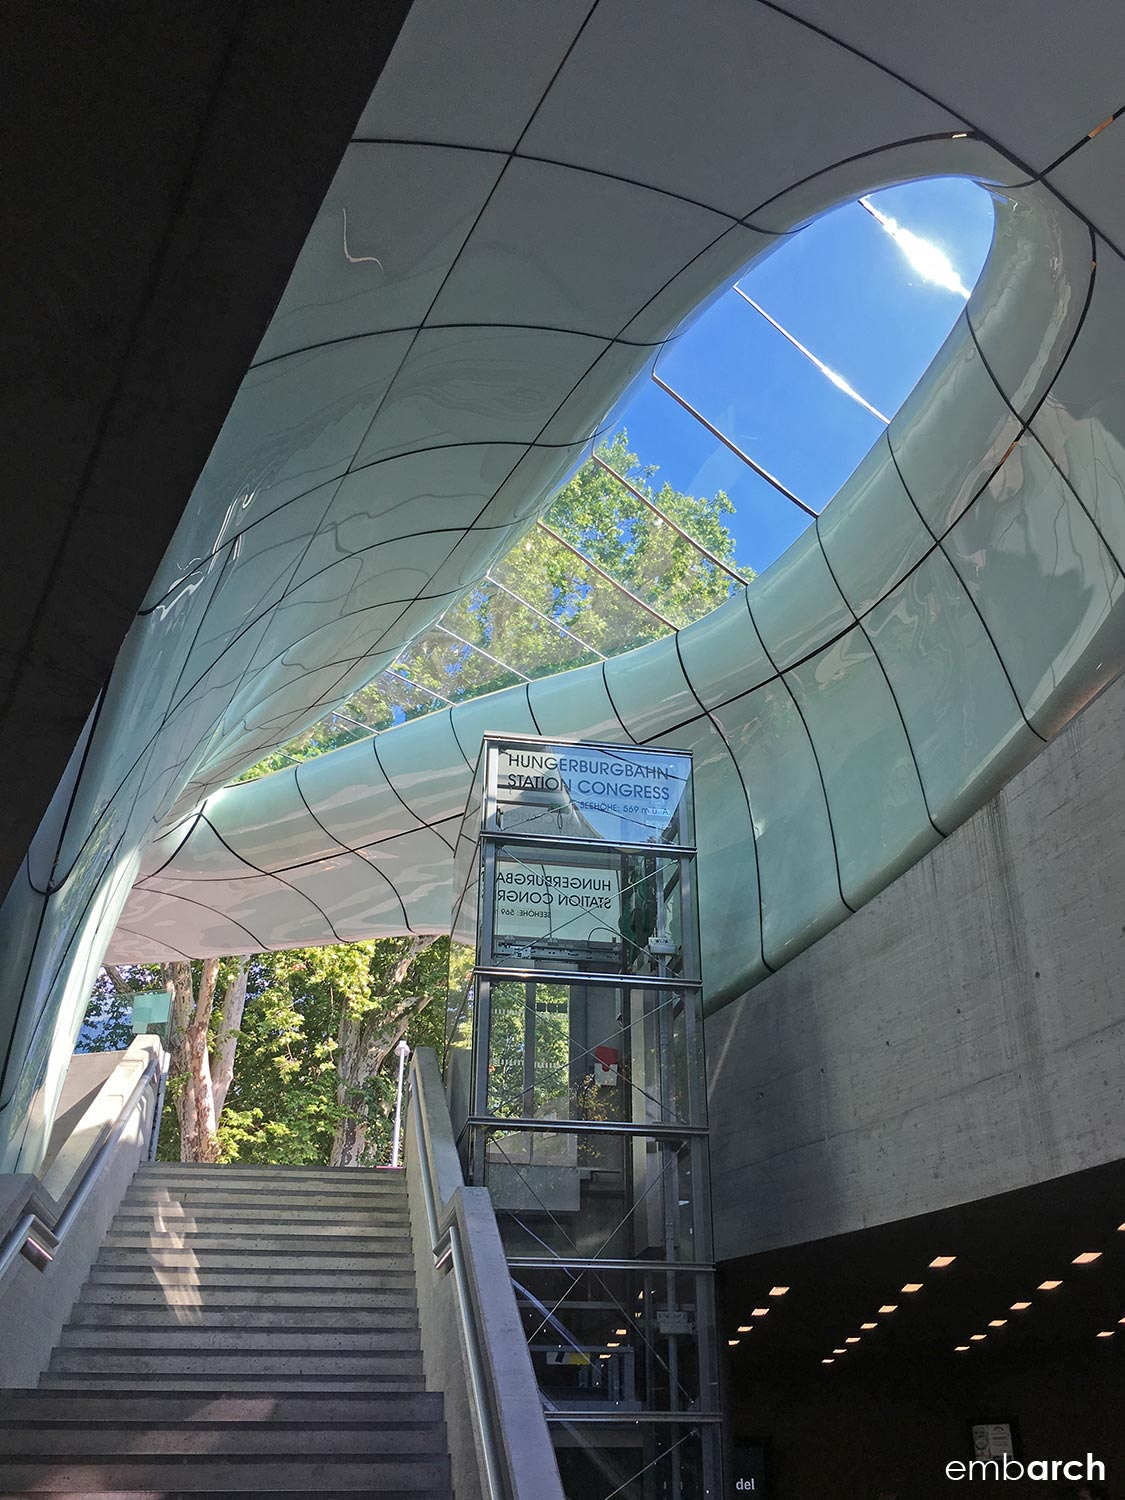 Congress Station - interior, looking up from lower level